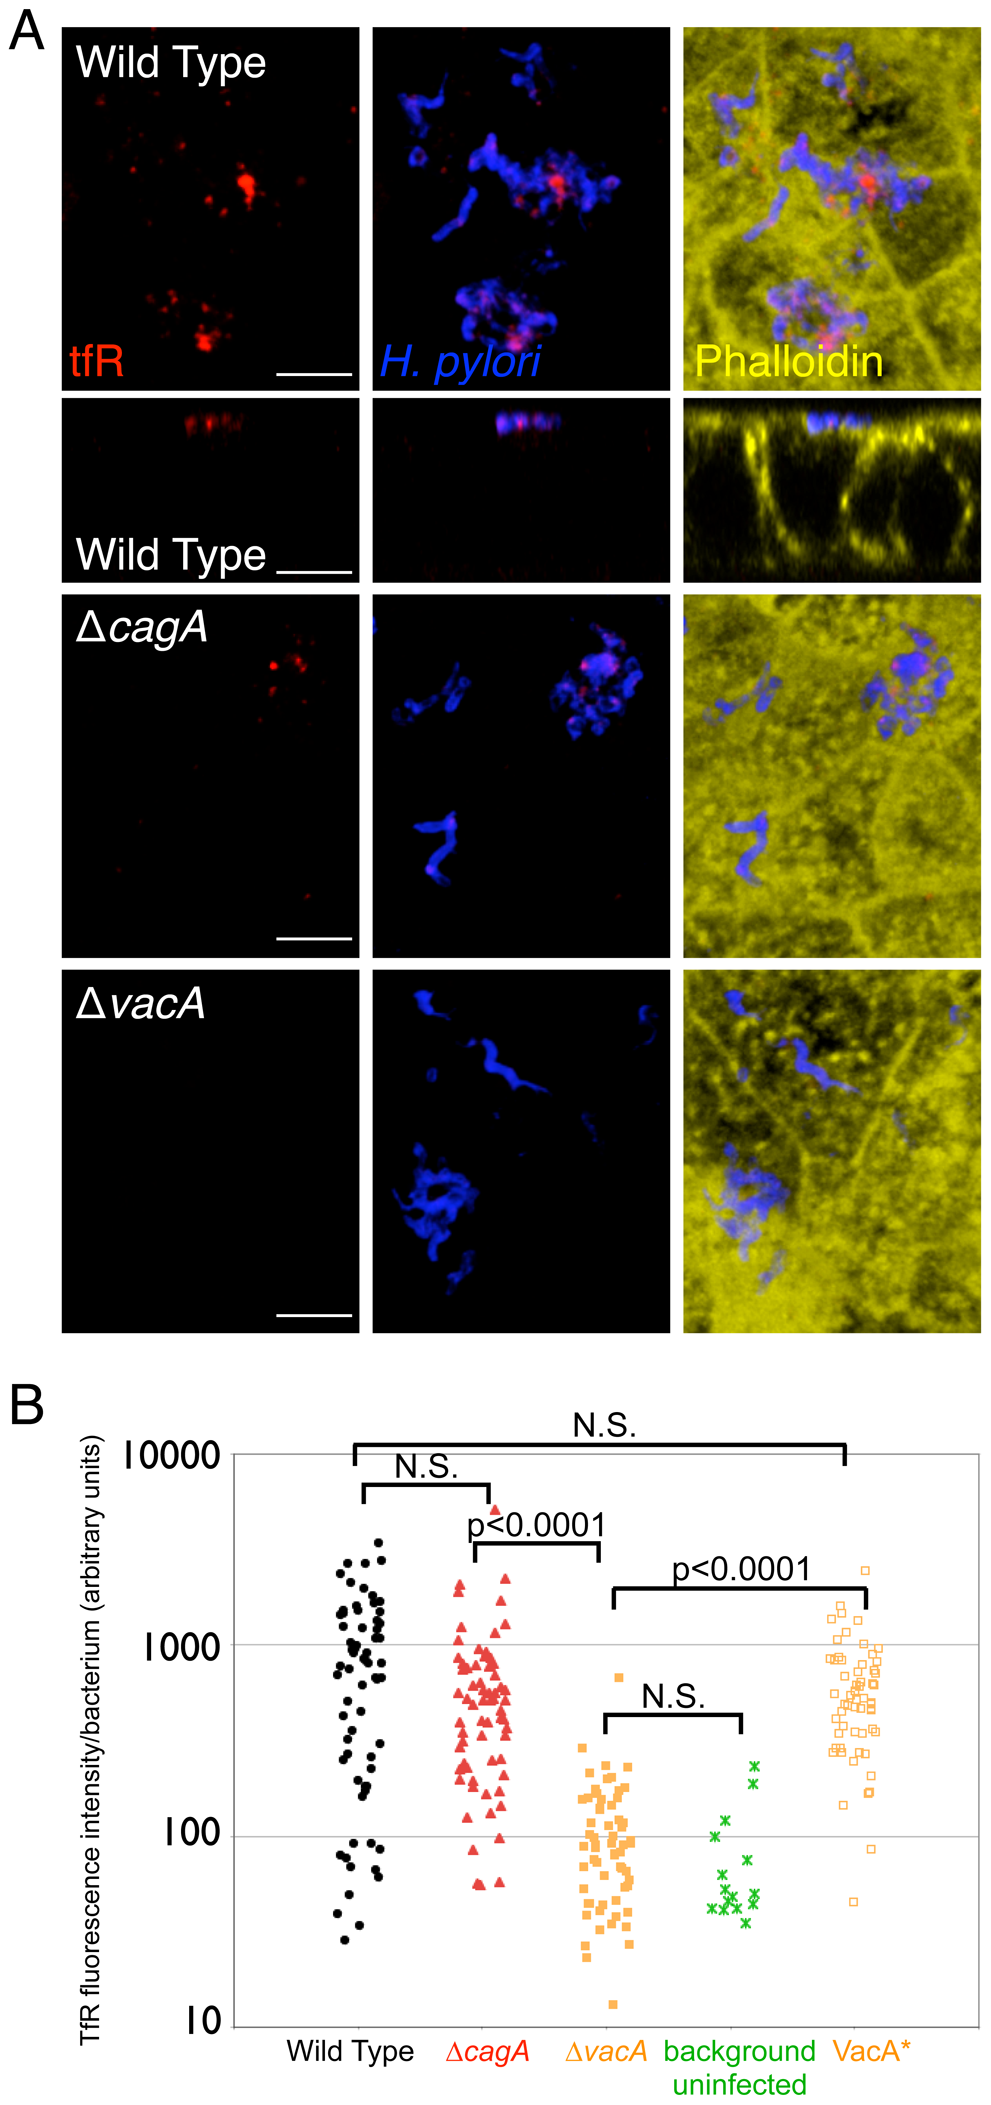 Transferrin receptor is mislocalized apically to sites of bacterial microcolonies.